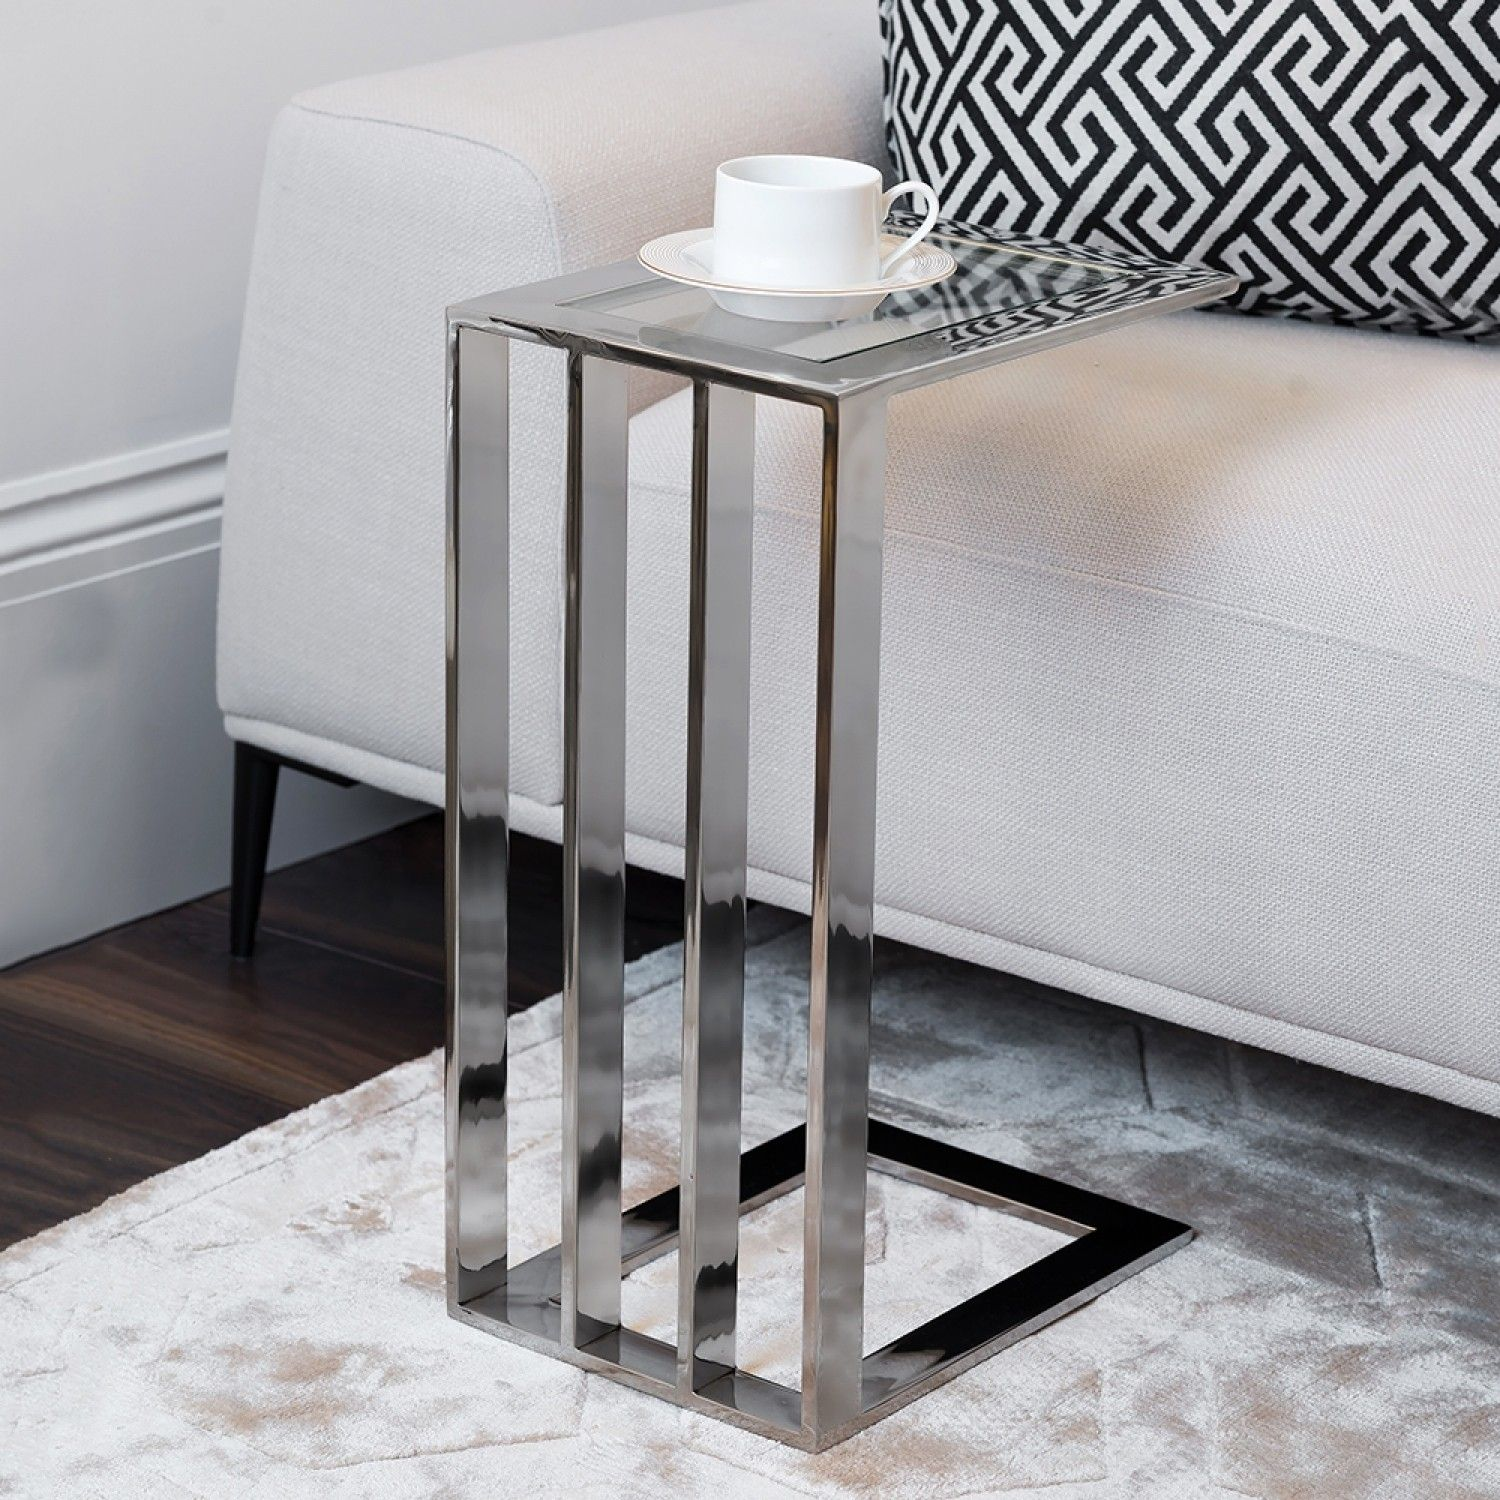 Incredible Monaco Slim Side Table Console Coffee Side Tables In 2019 Pabps2019 Chair Design Images Pabps2019Com